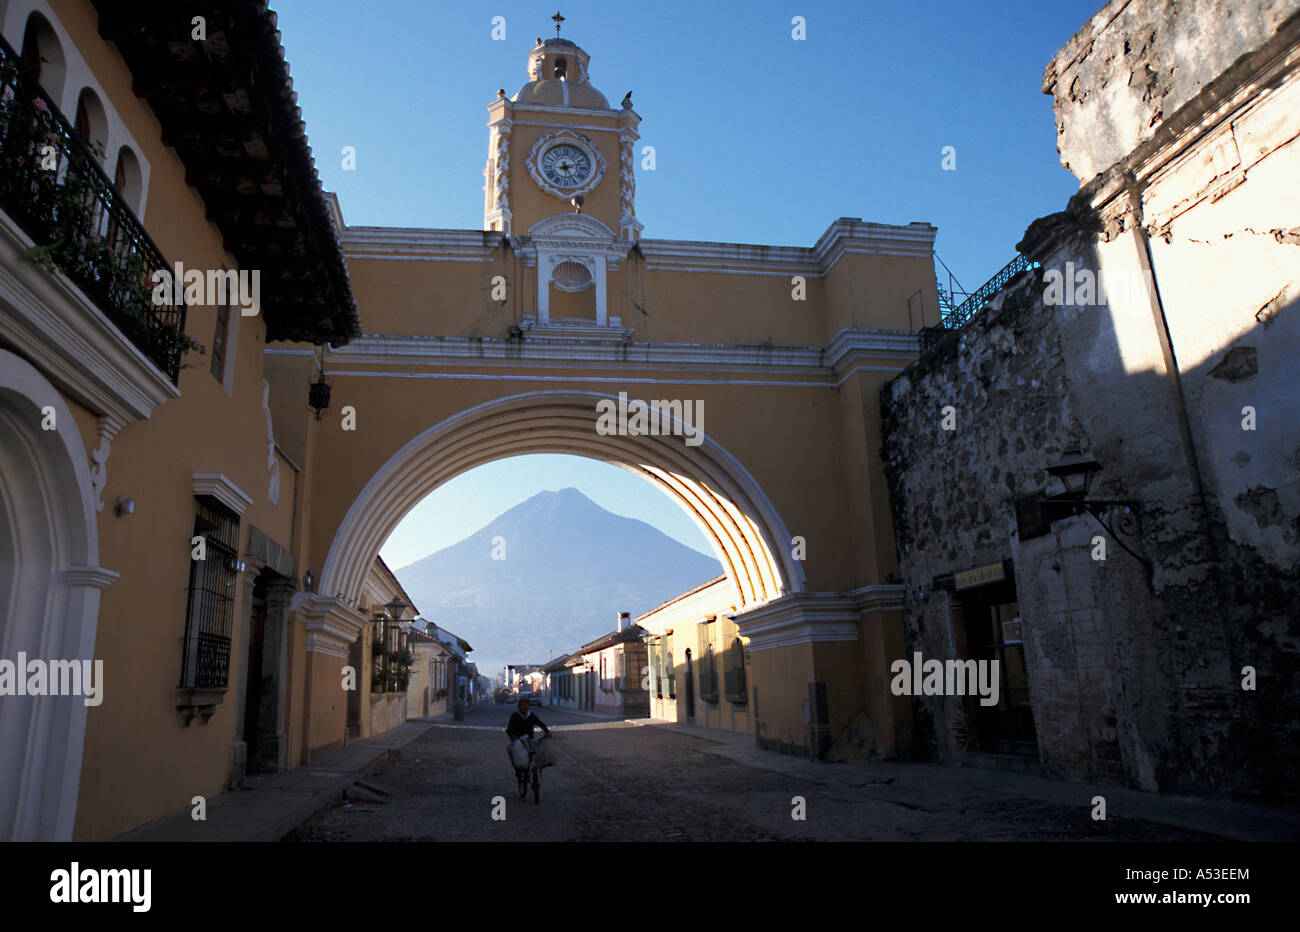 guatemala antigua country developing nation less economically developed poverty poor culture emerging market Stock Photo